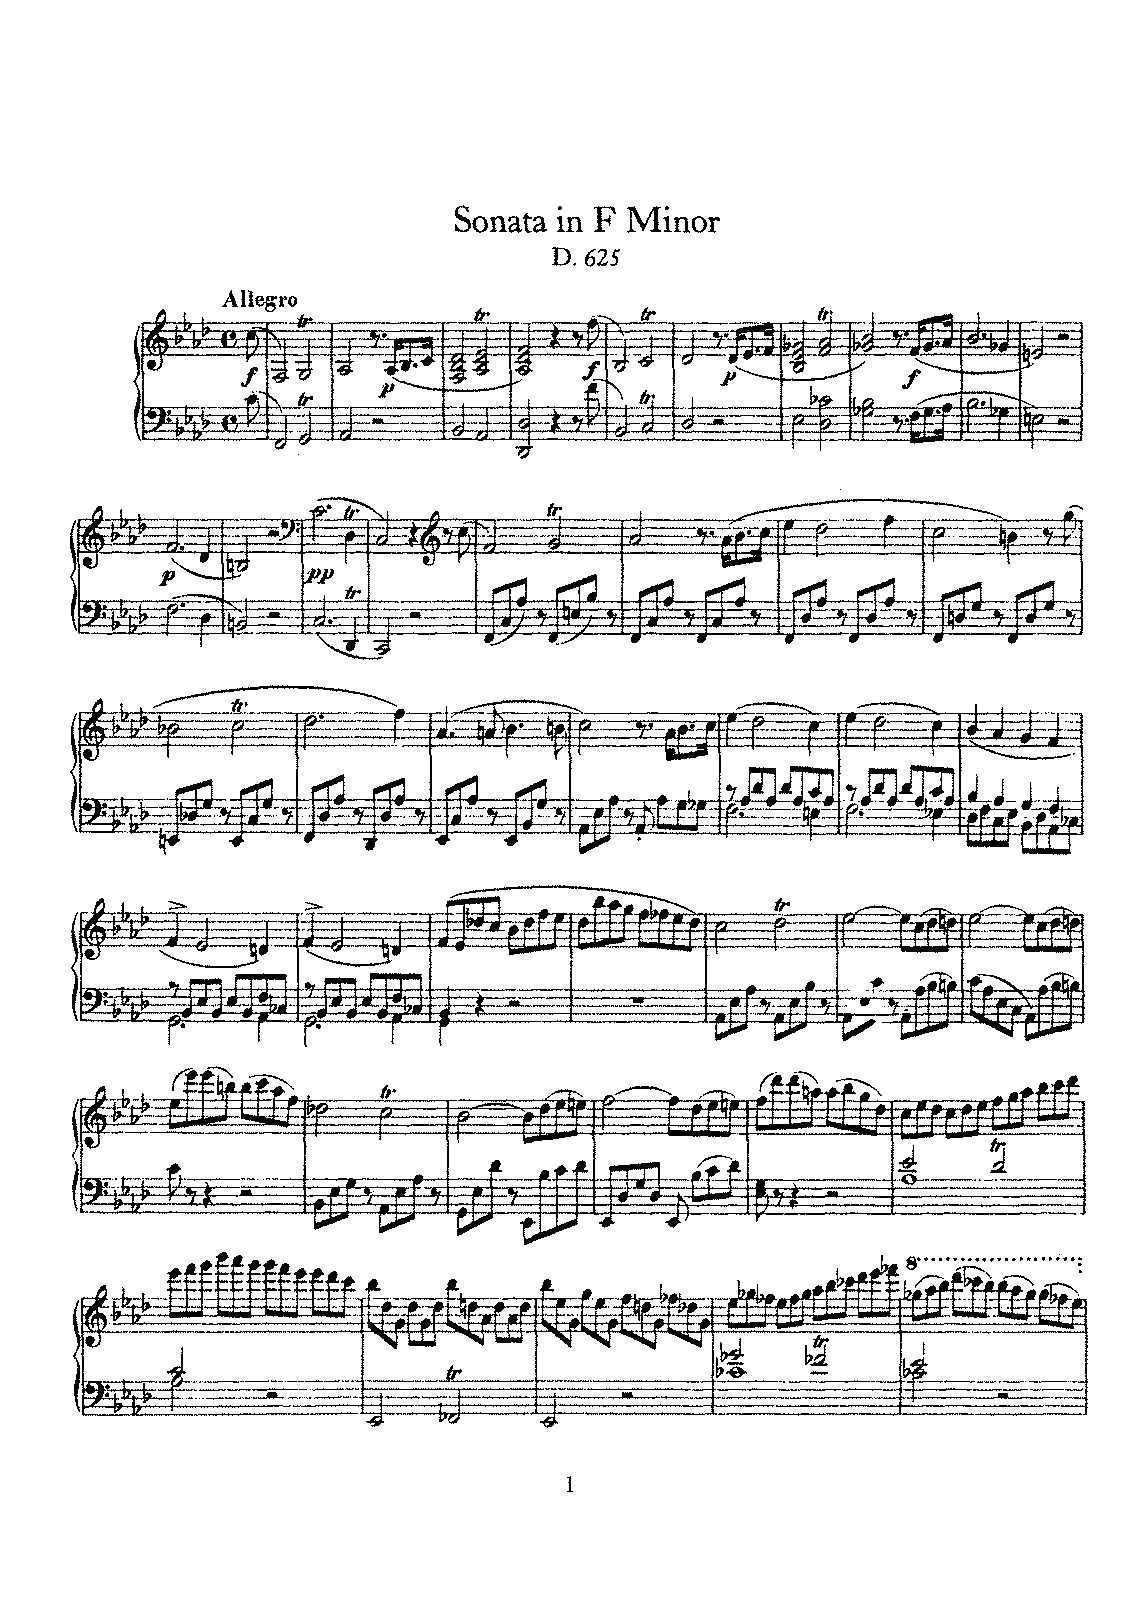 Schubert - D.625 - Piano Sonata in F minor.pdf